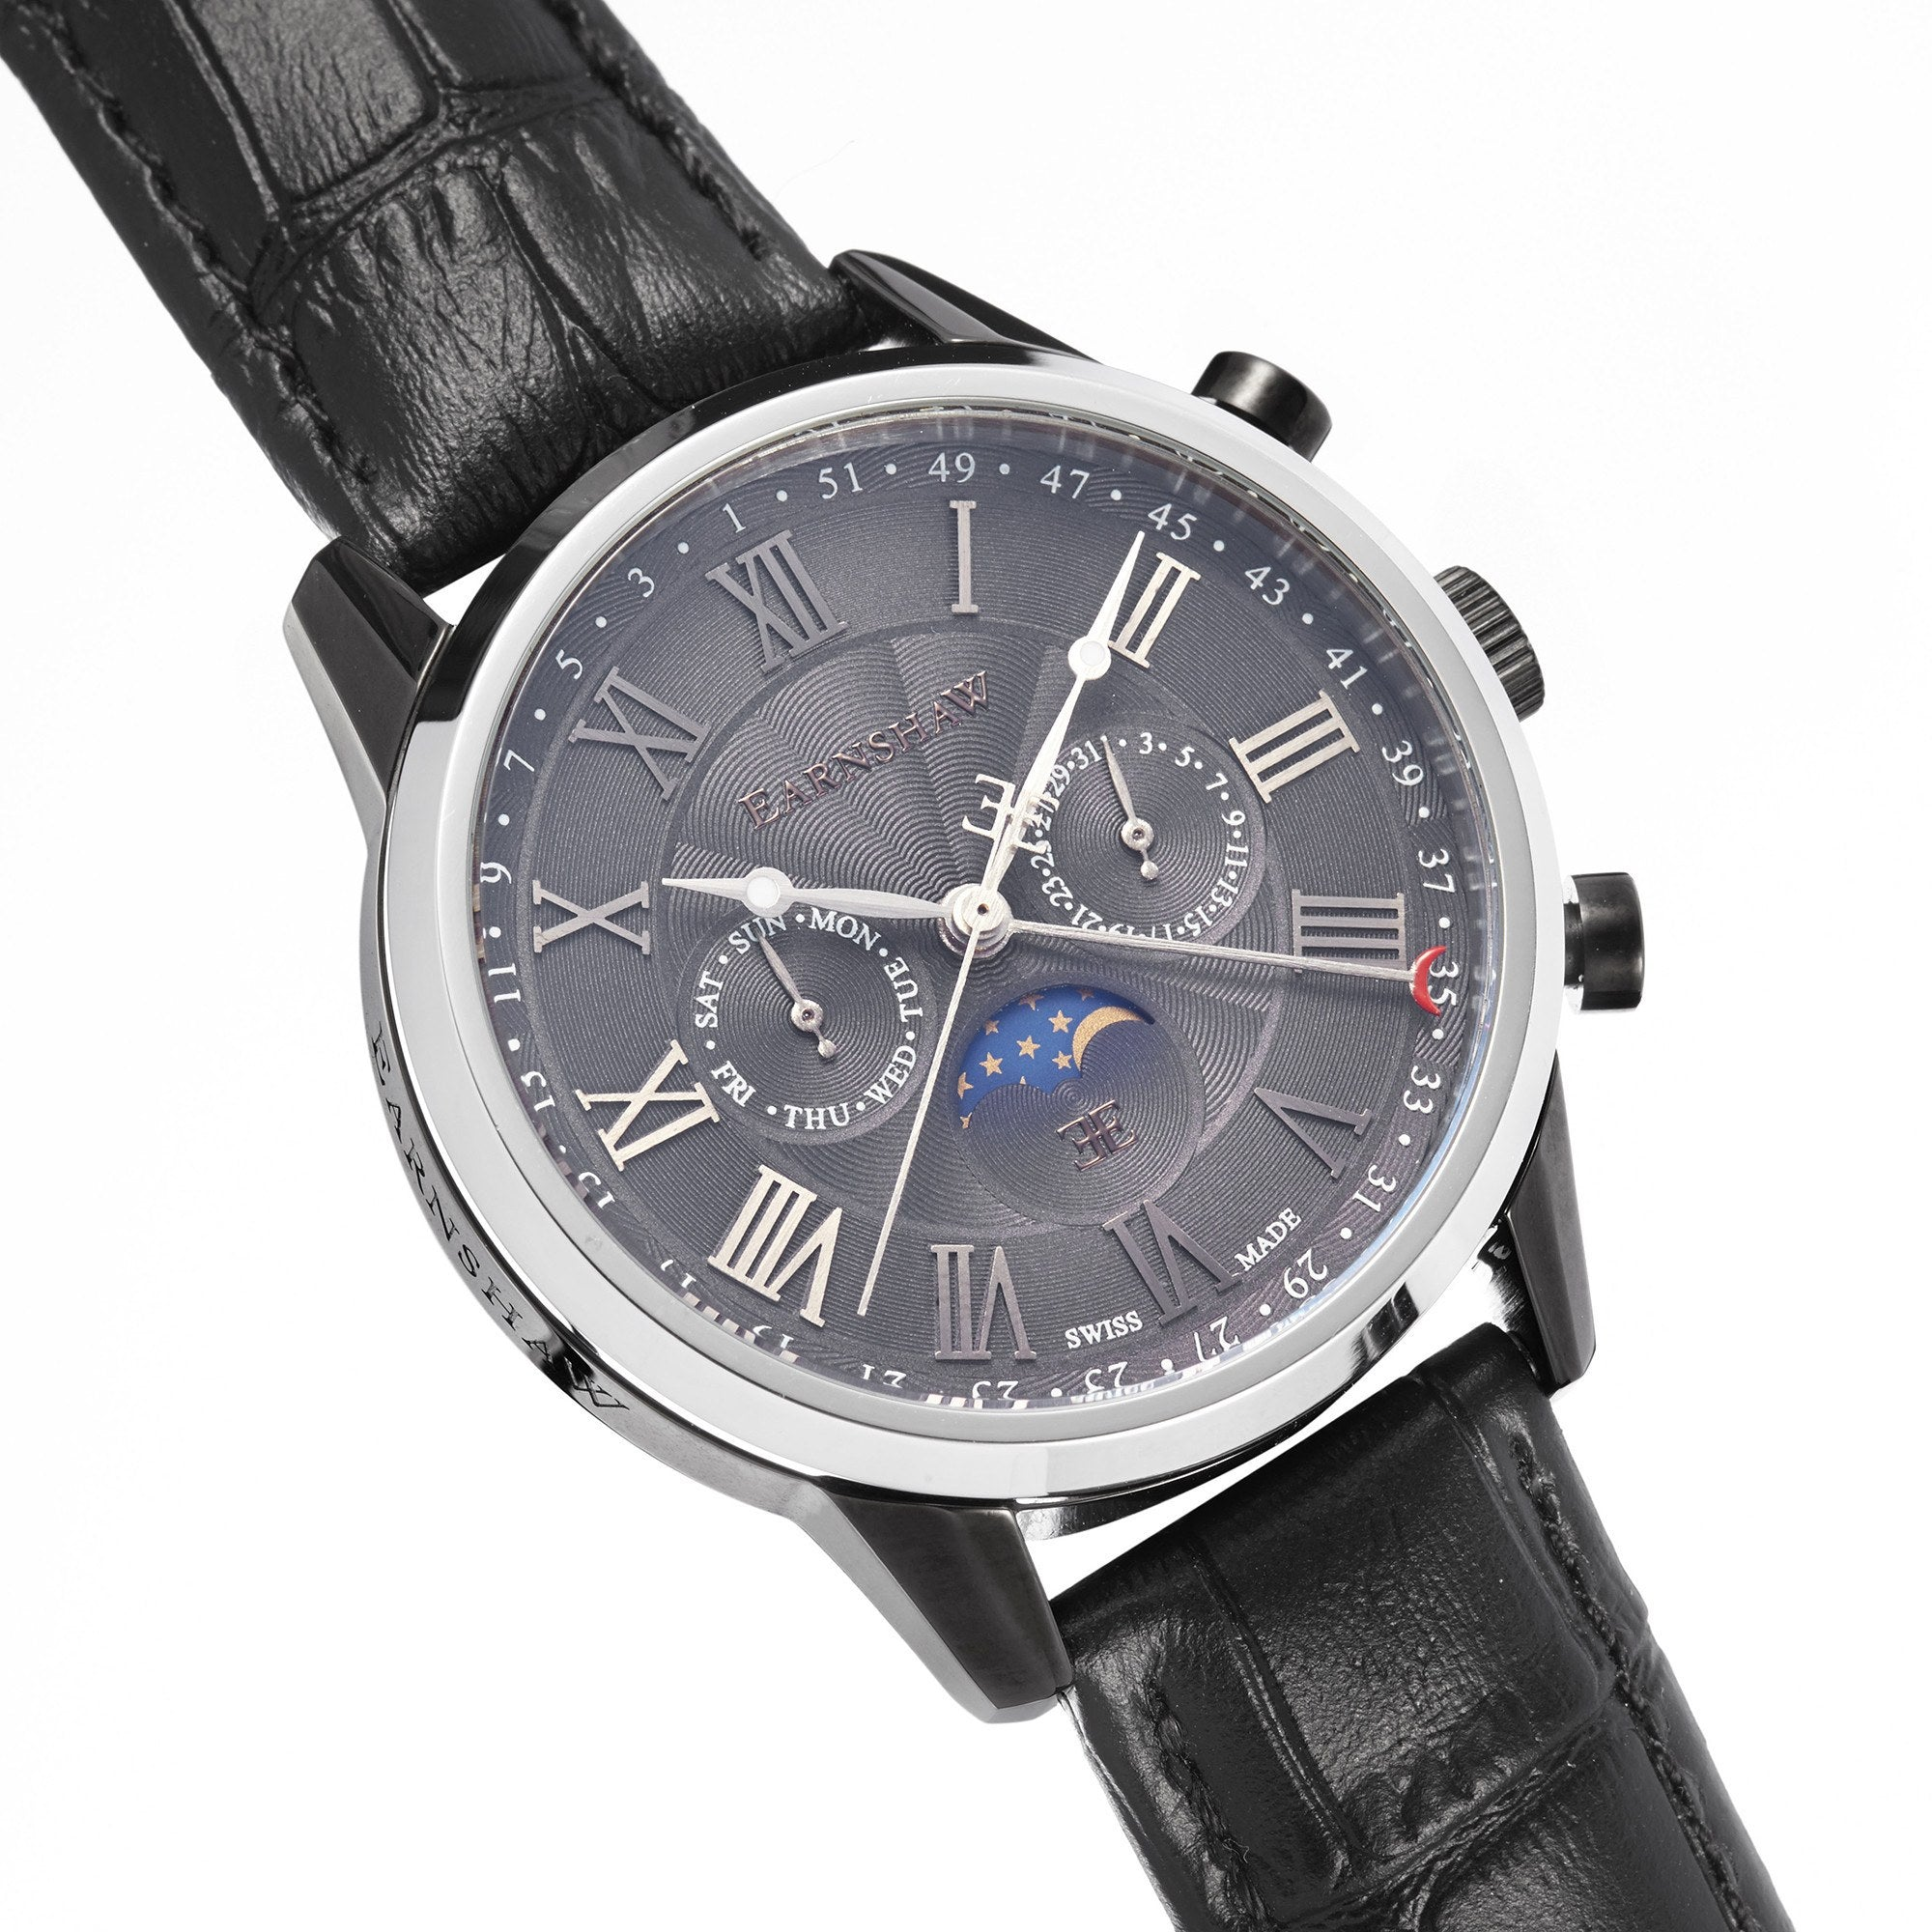 Thomas Earnshaw THOMAS EARNSHAW SWISS MADE Officer Quartz Watch With Black Genuine Leather Strap ES-0017-03